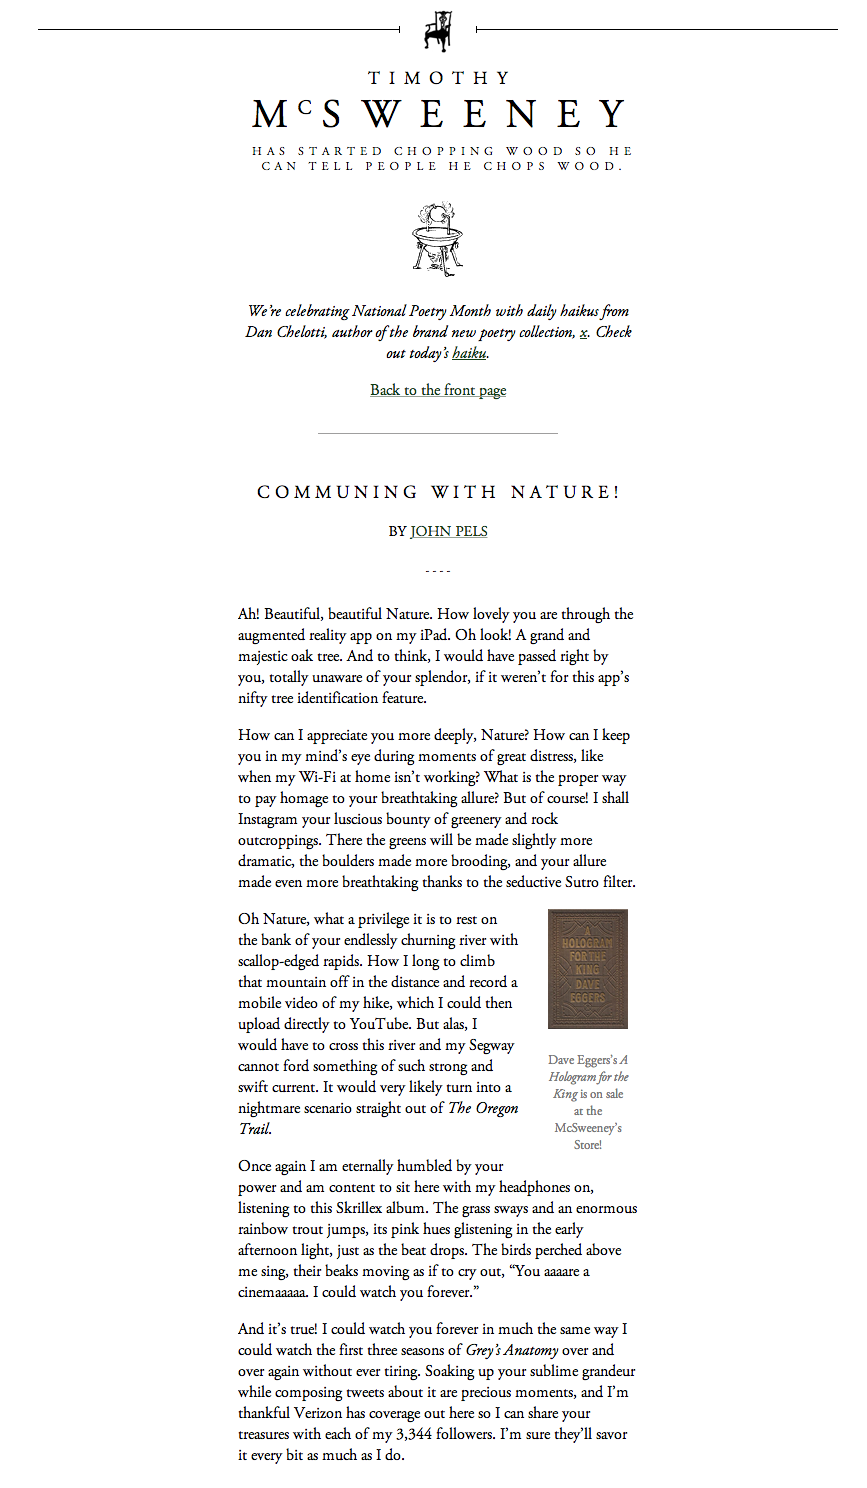 McSweeney's Internet Tendency: Communing with Nature!